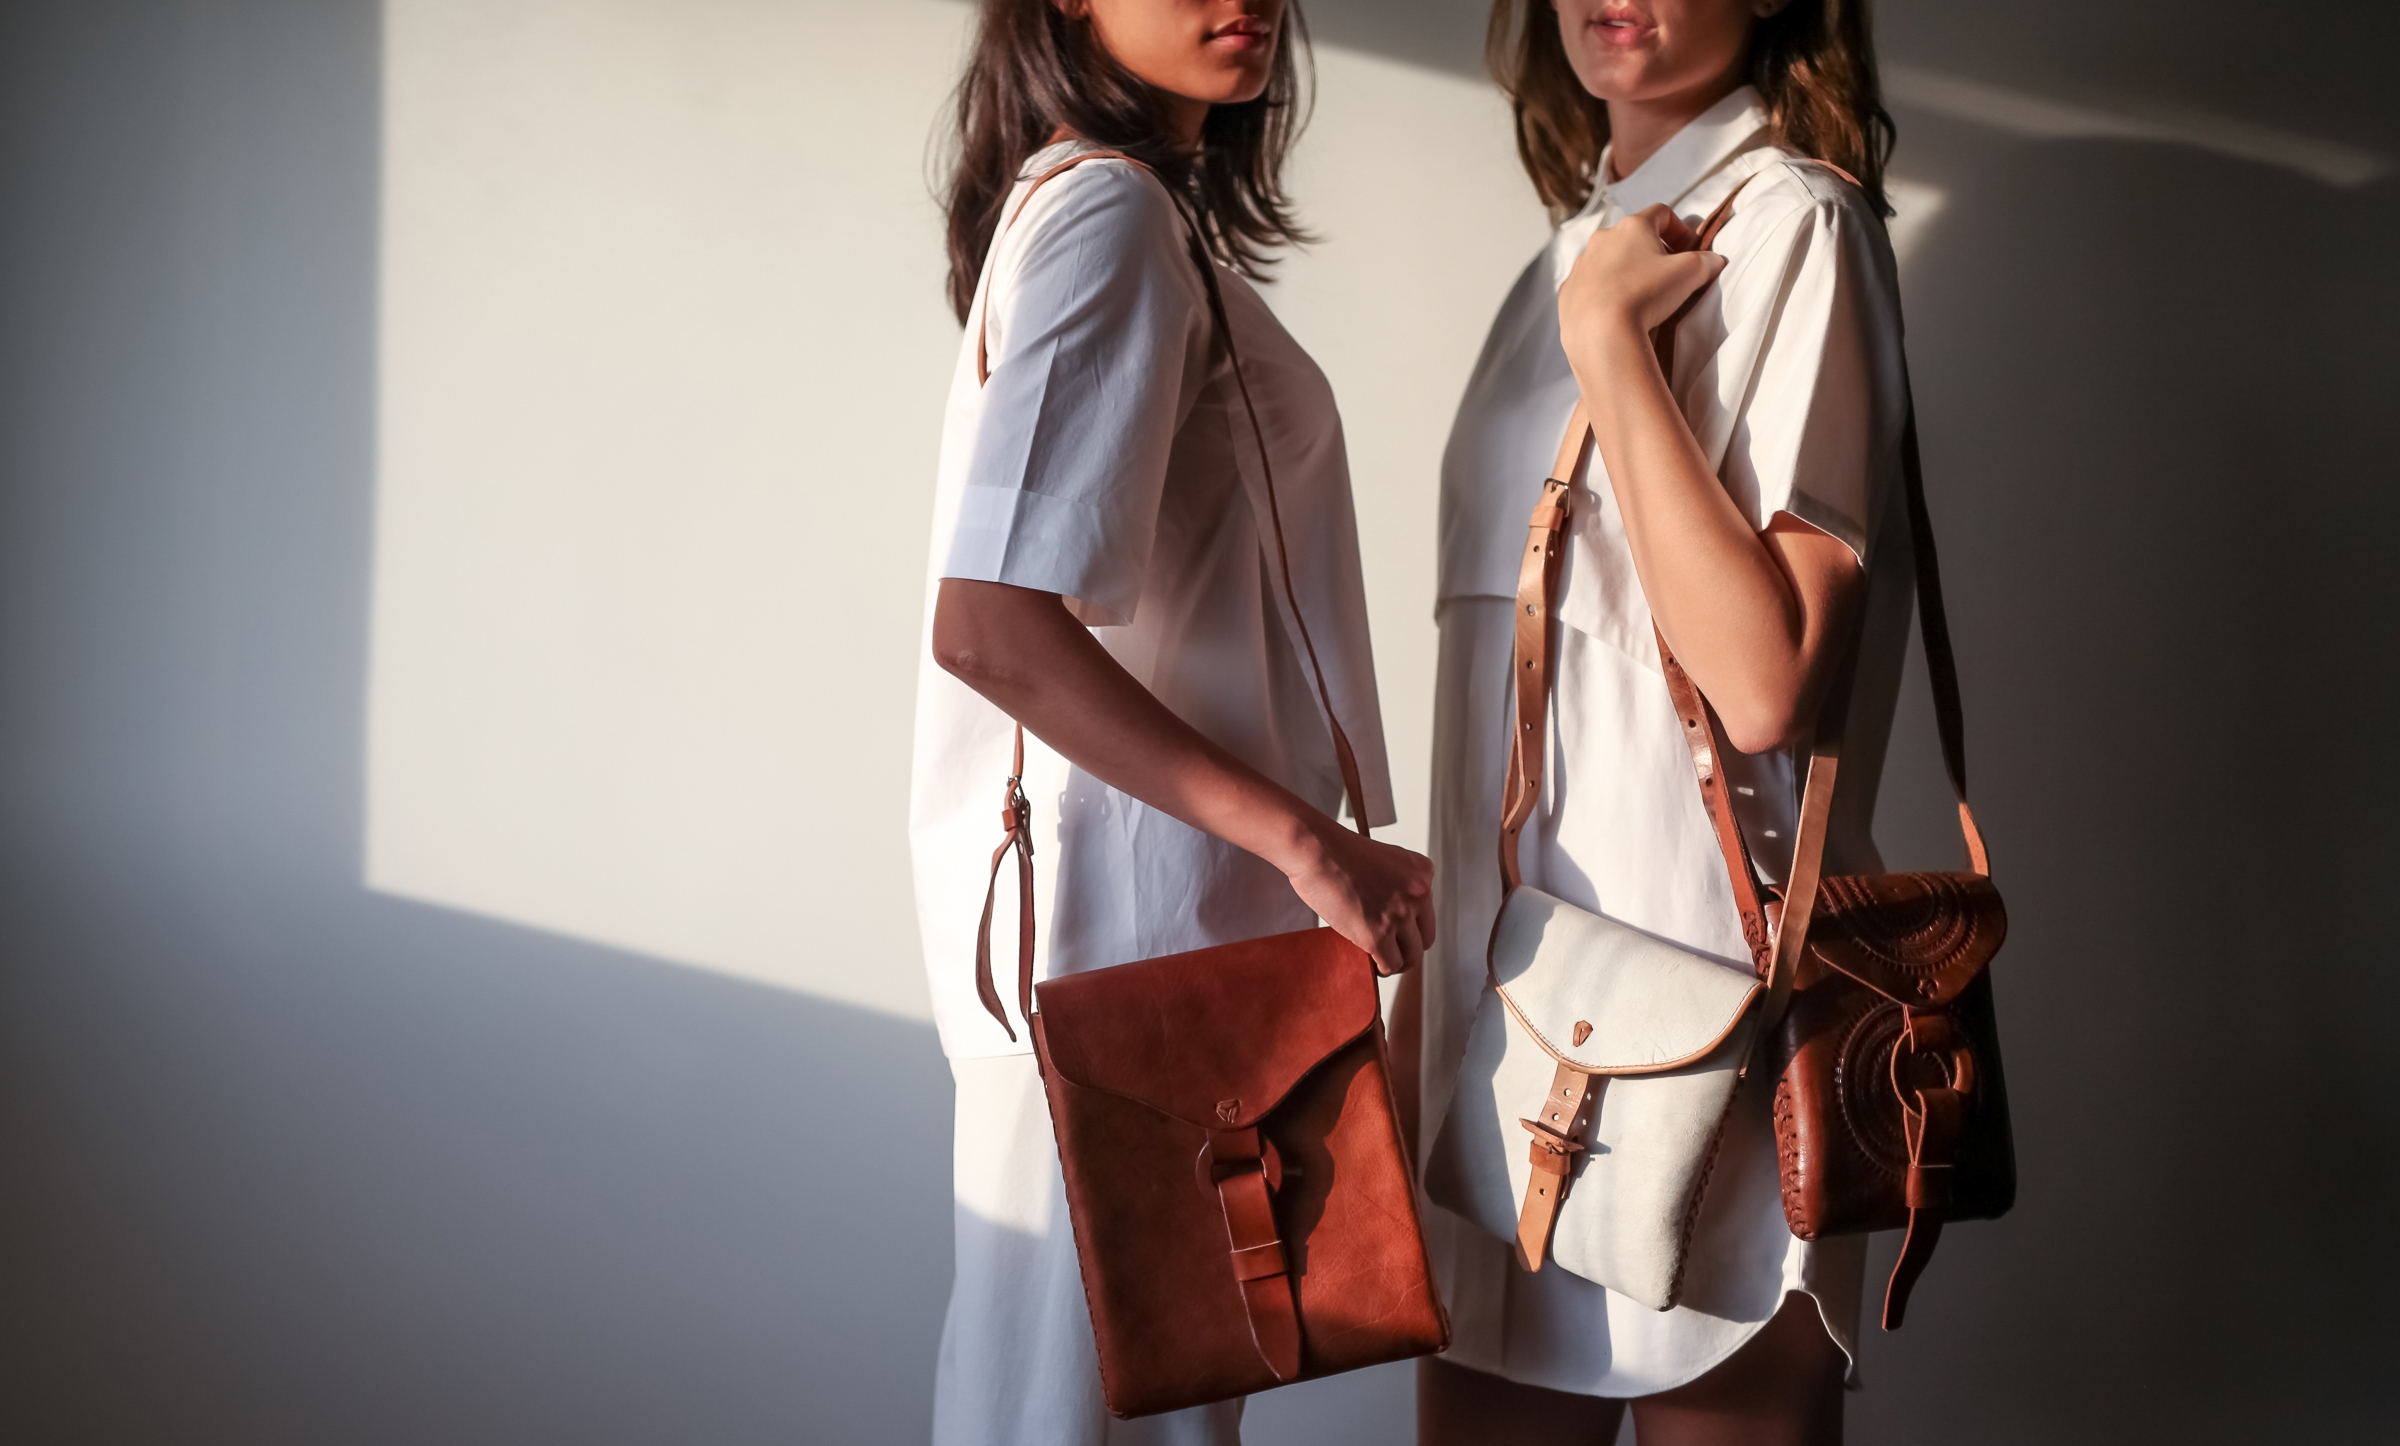 SOL Leather Bags ethically handcrafted fair trade